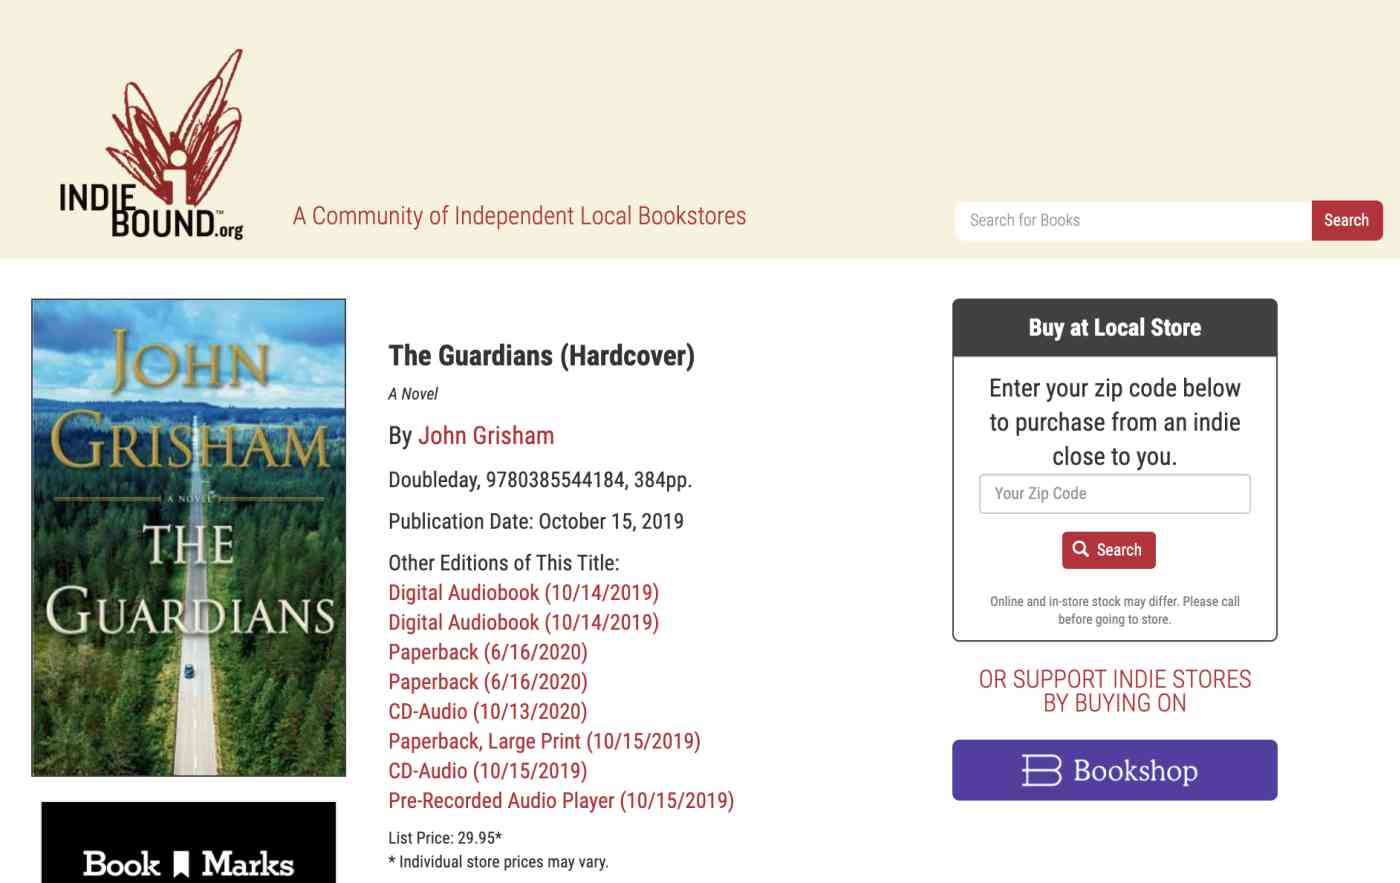 screenshot of indie bookstore selling The Guardians by John Grisham